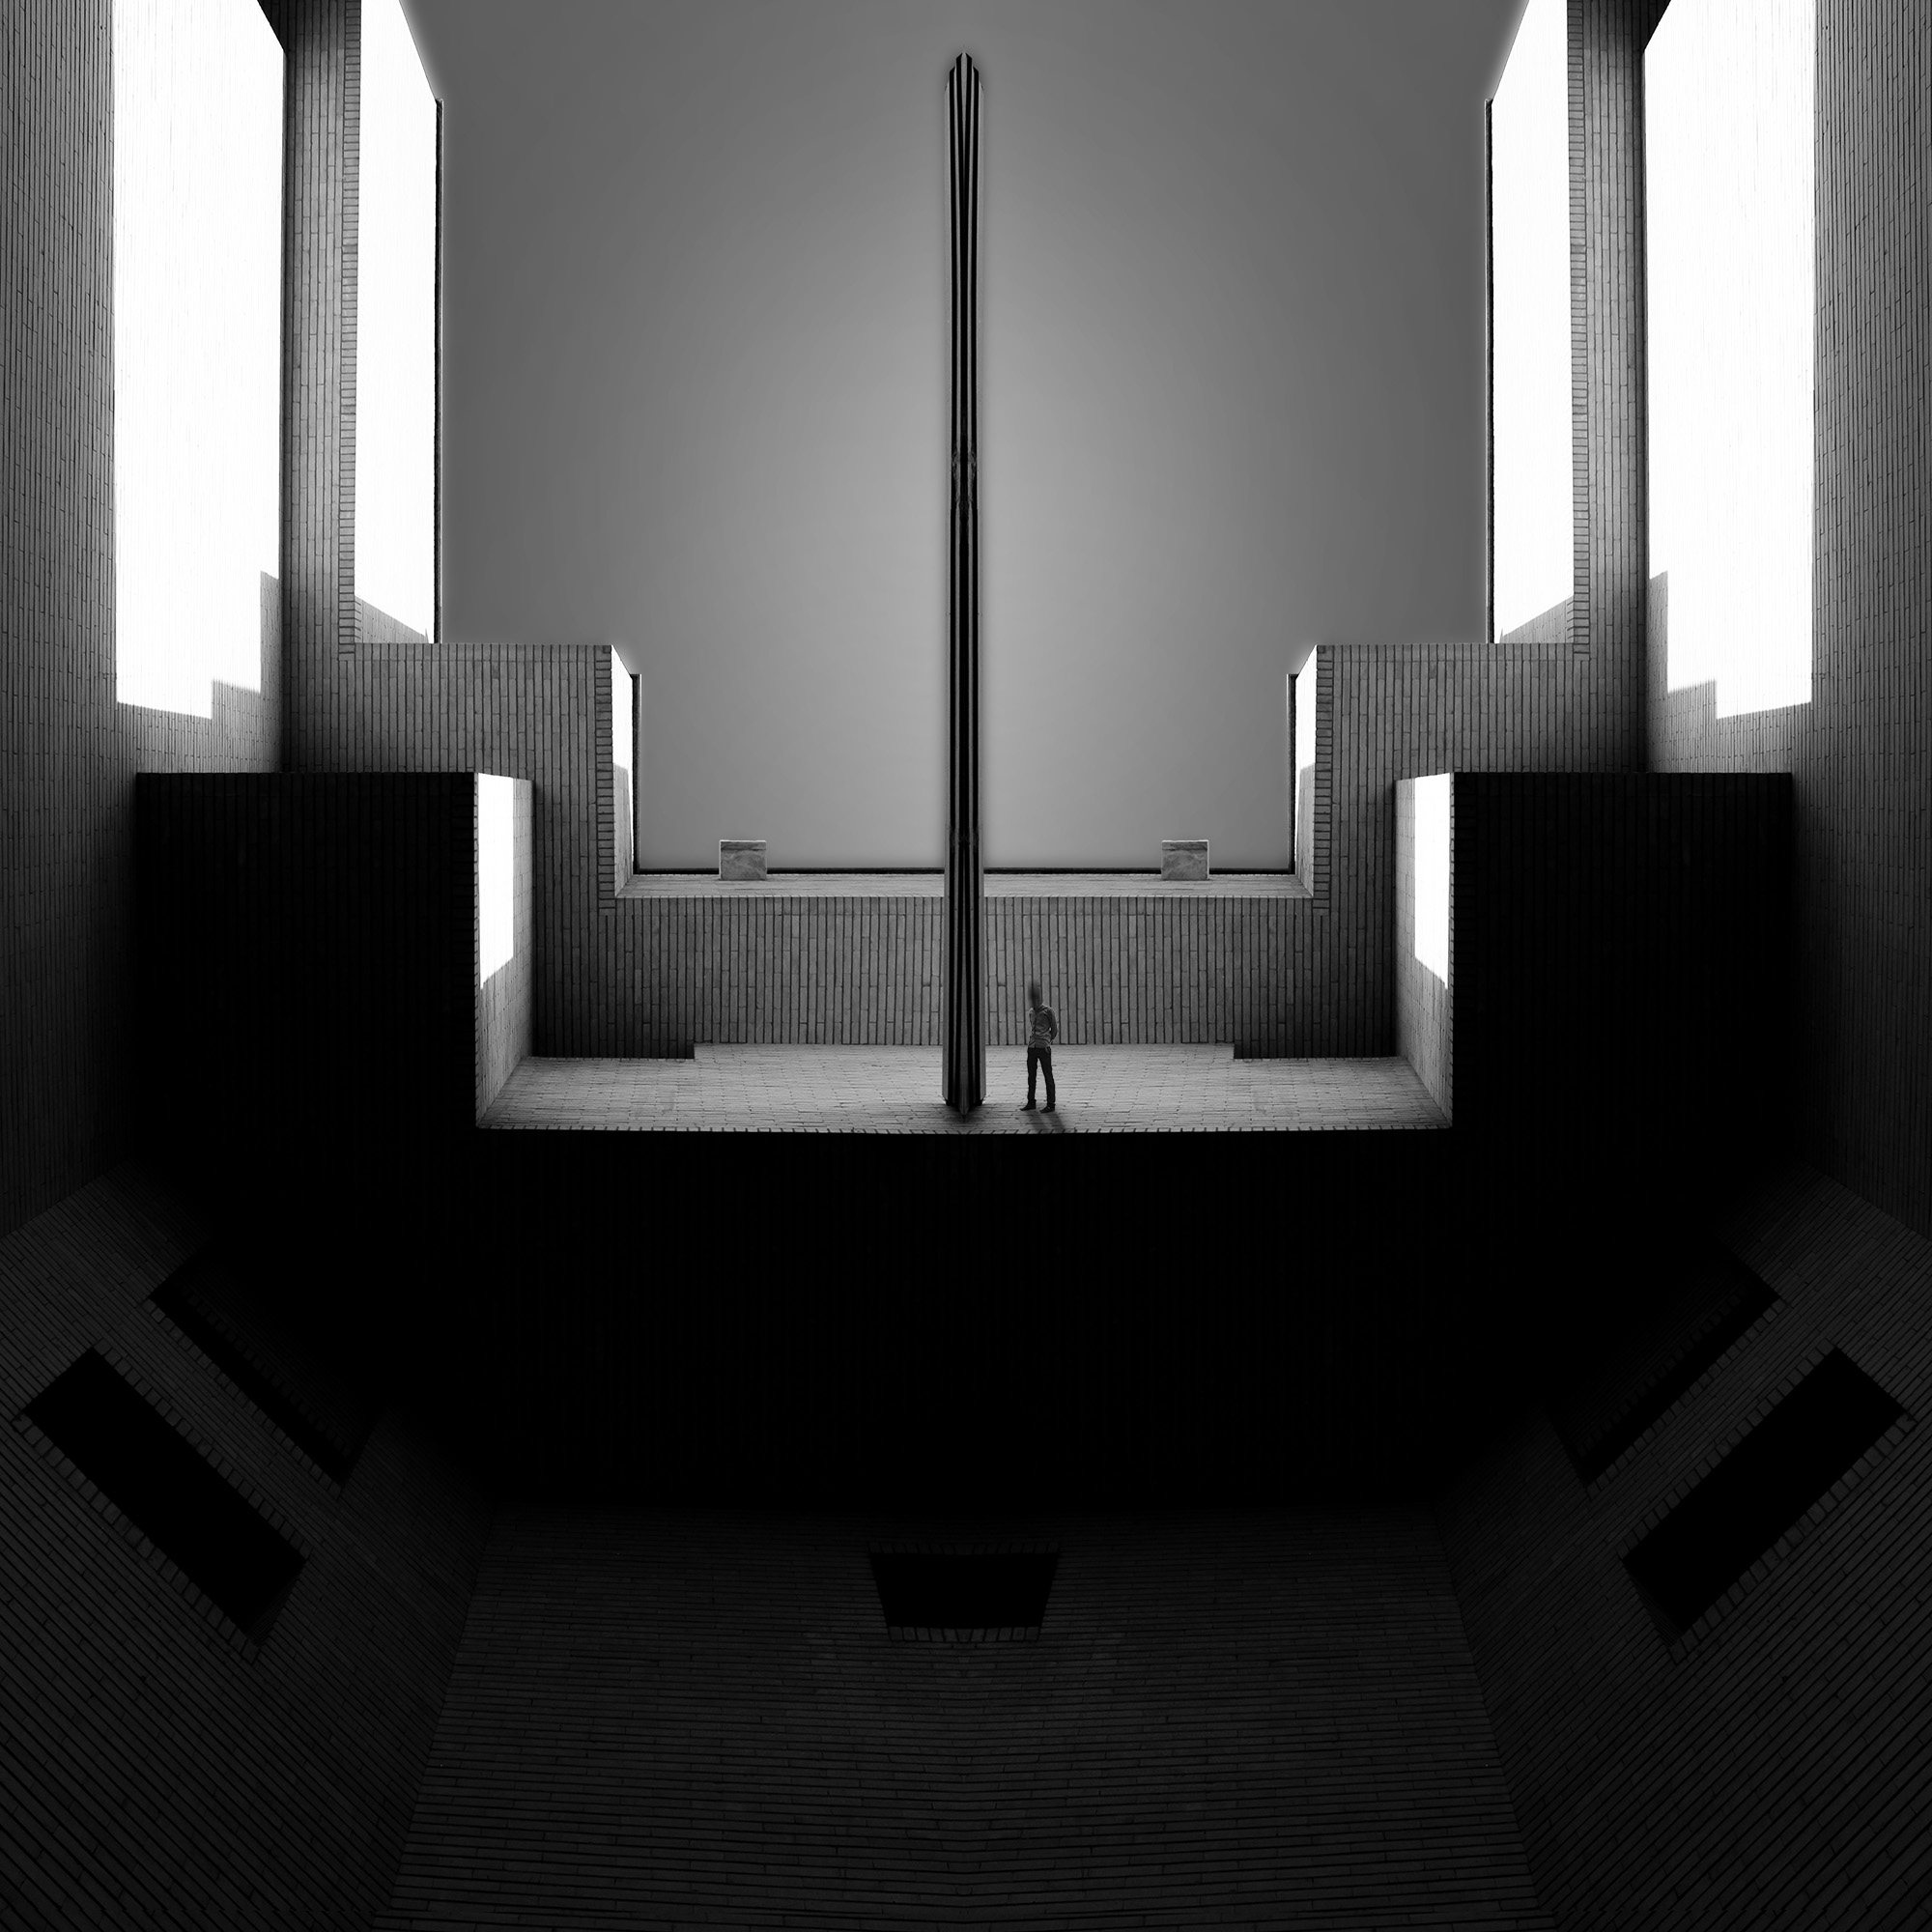 Milad_Safabakhsh_The spce in between By Milad safabakhsh (2).jpg